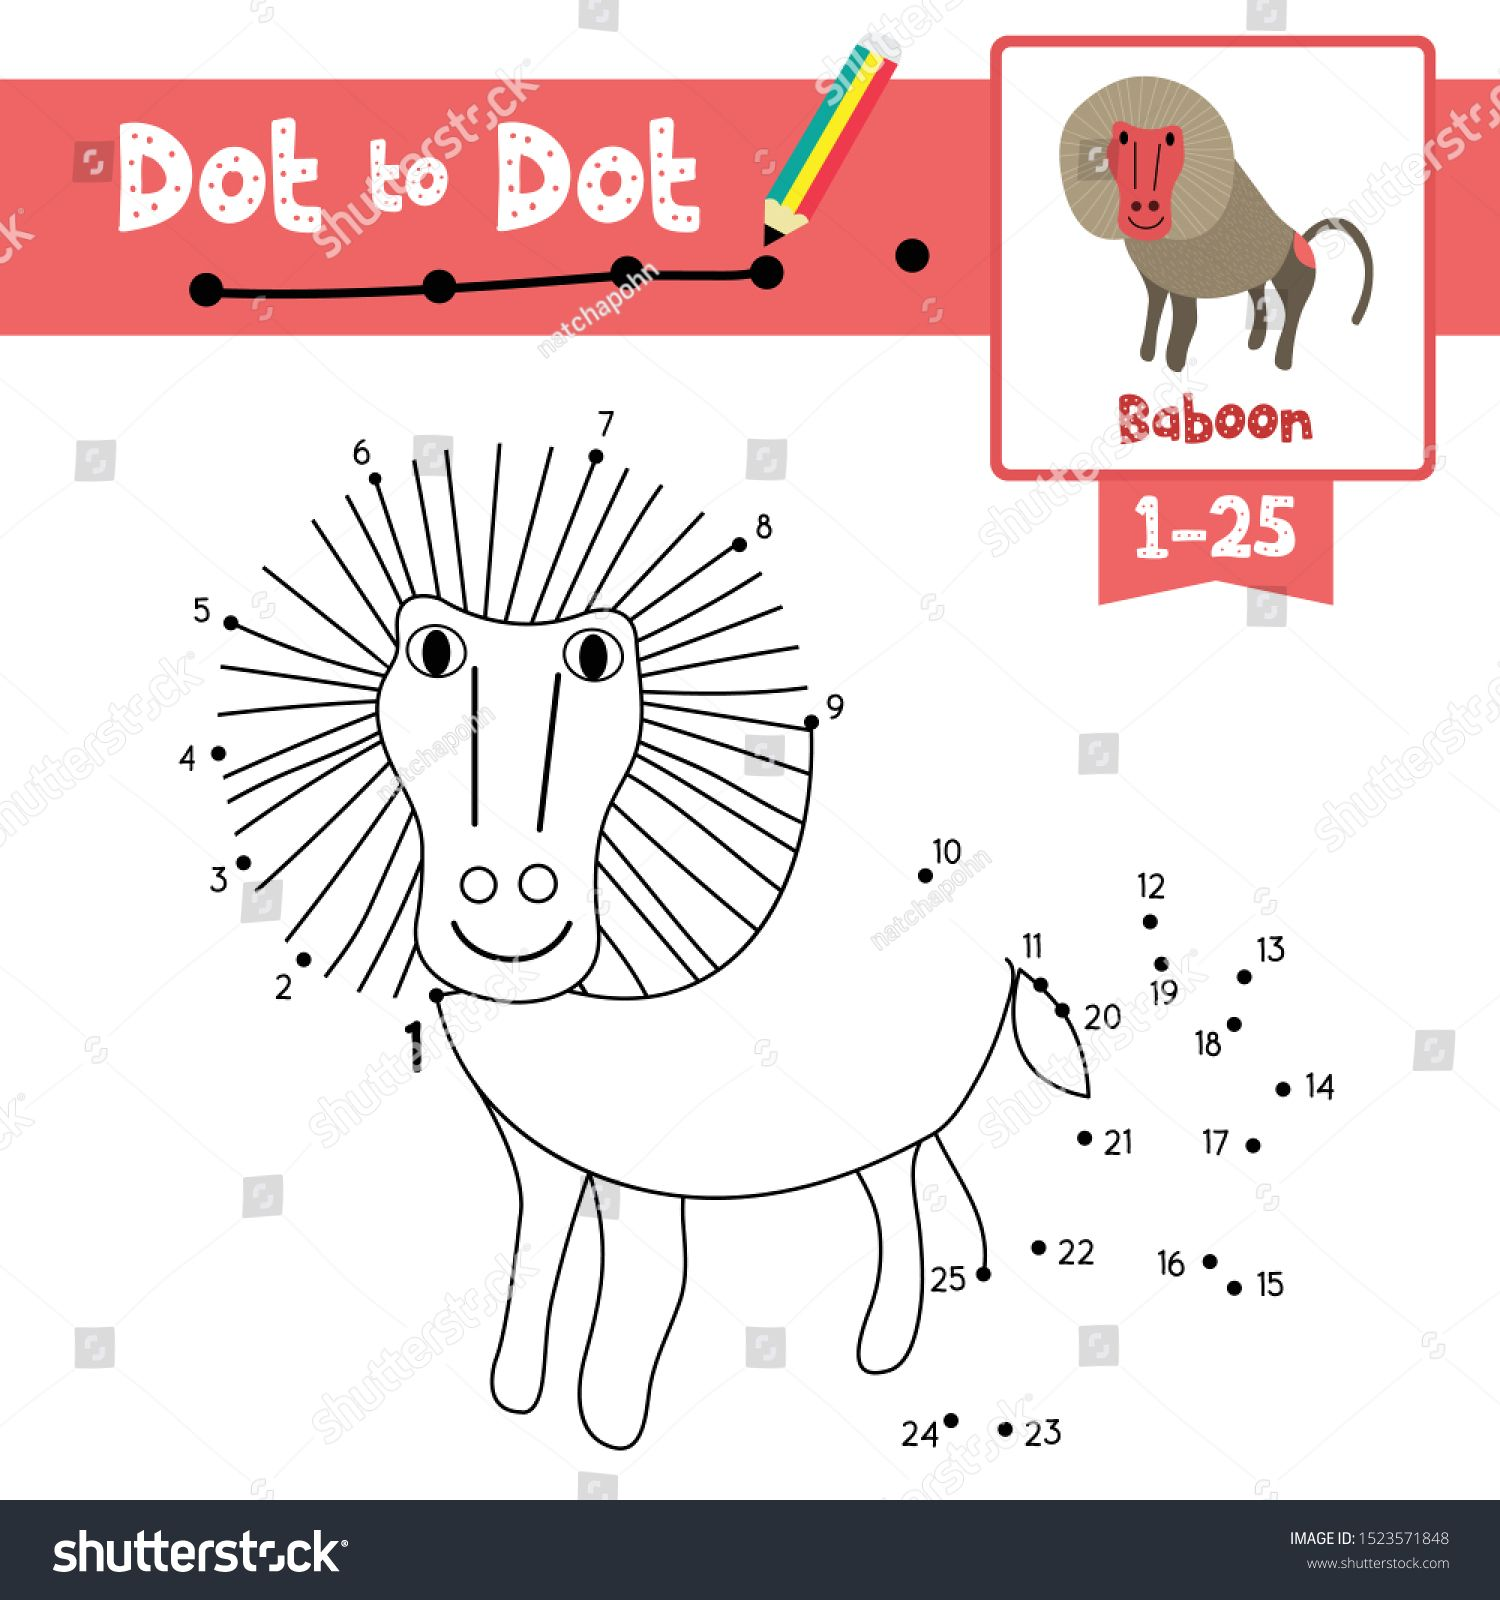 Dot To Dot Educational Game And Coloring Book Of Baboon